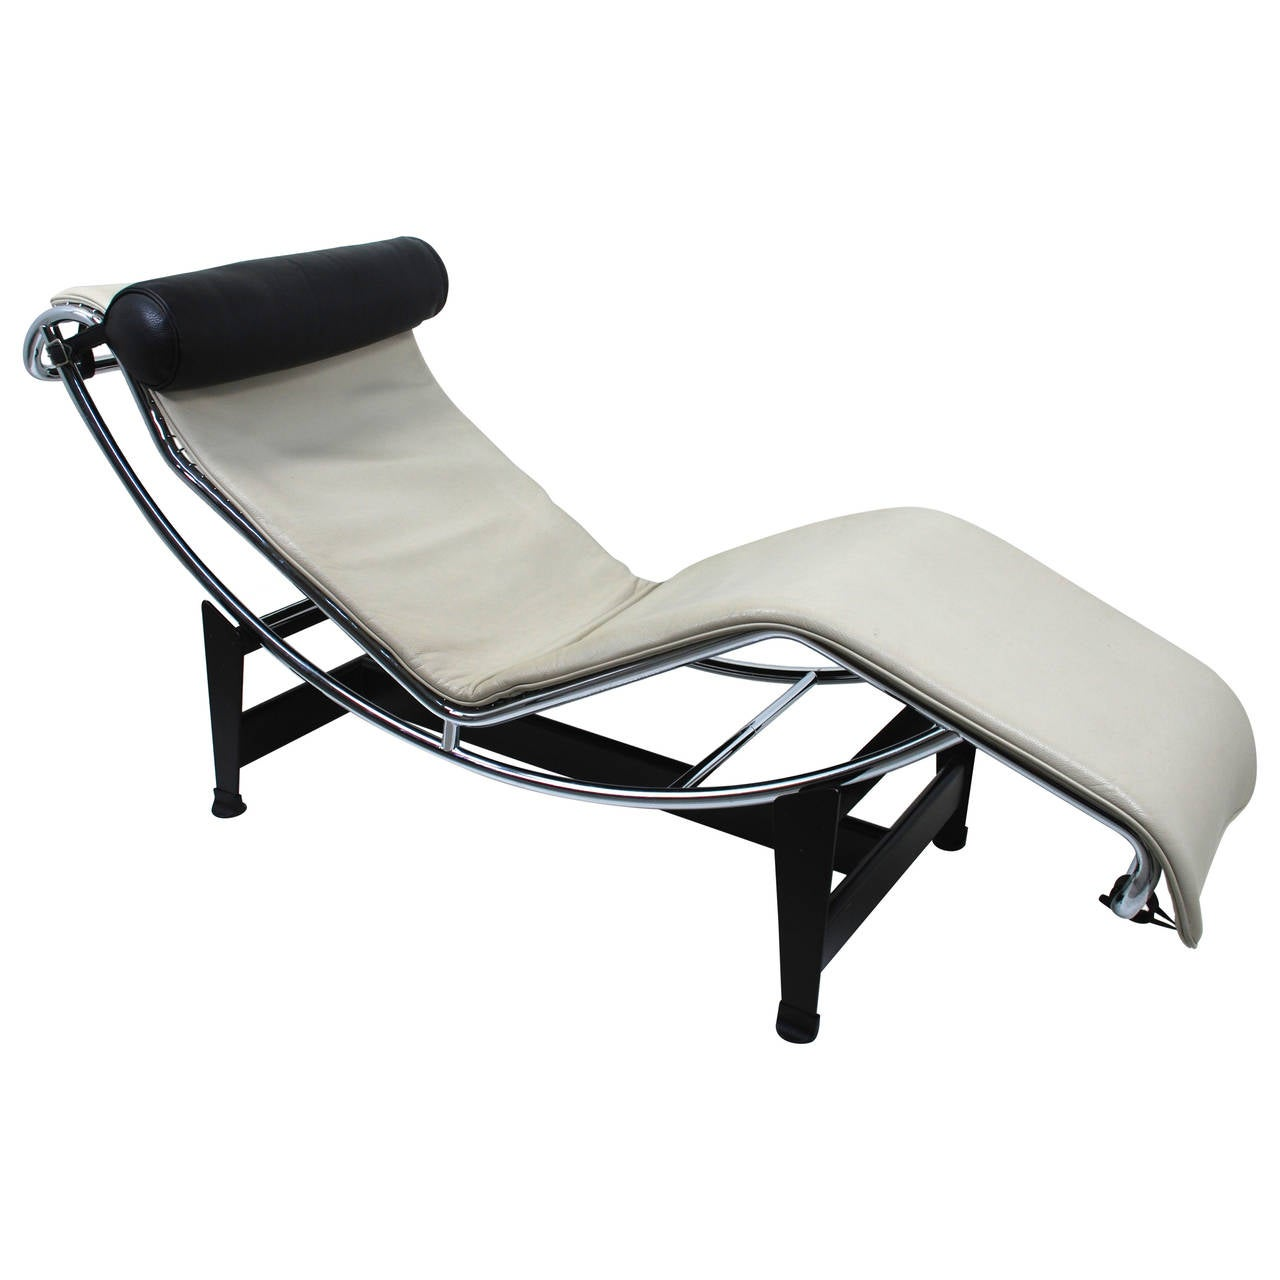 Le corbusier 39 lc 4 39 chaise longue 1928 at 1stdibs for Chaise longue design le corbusier